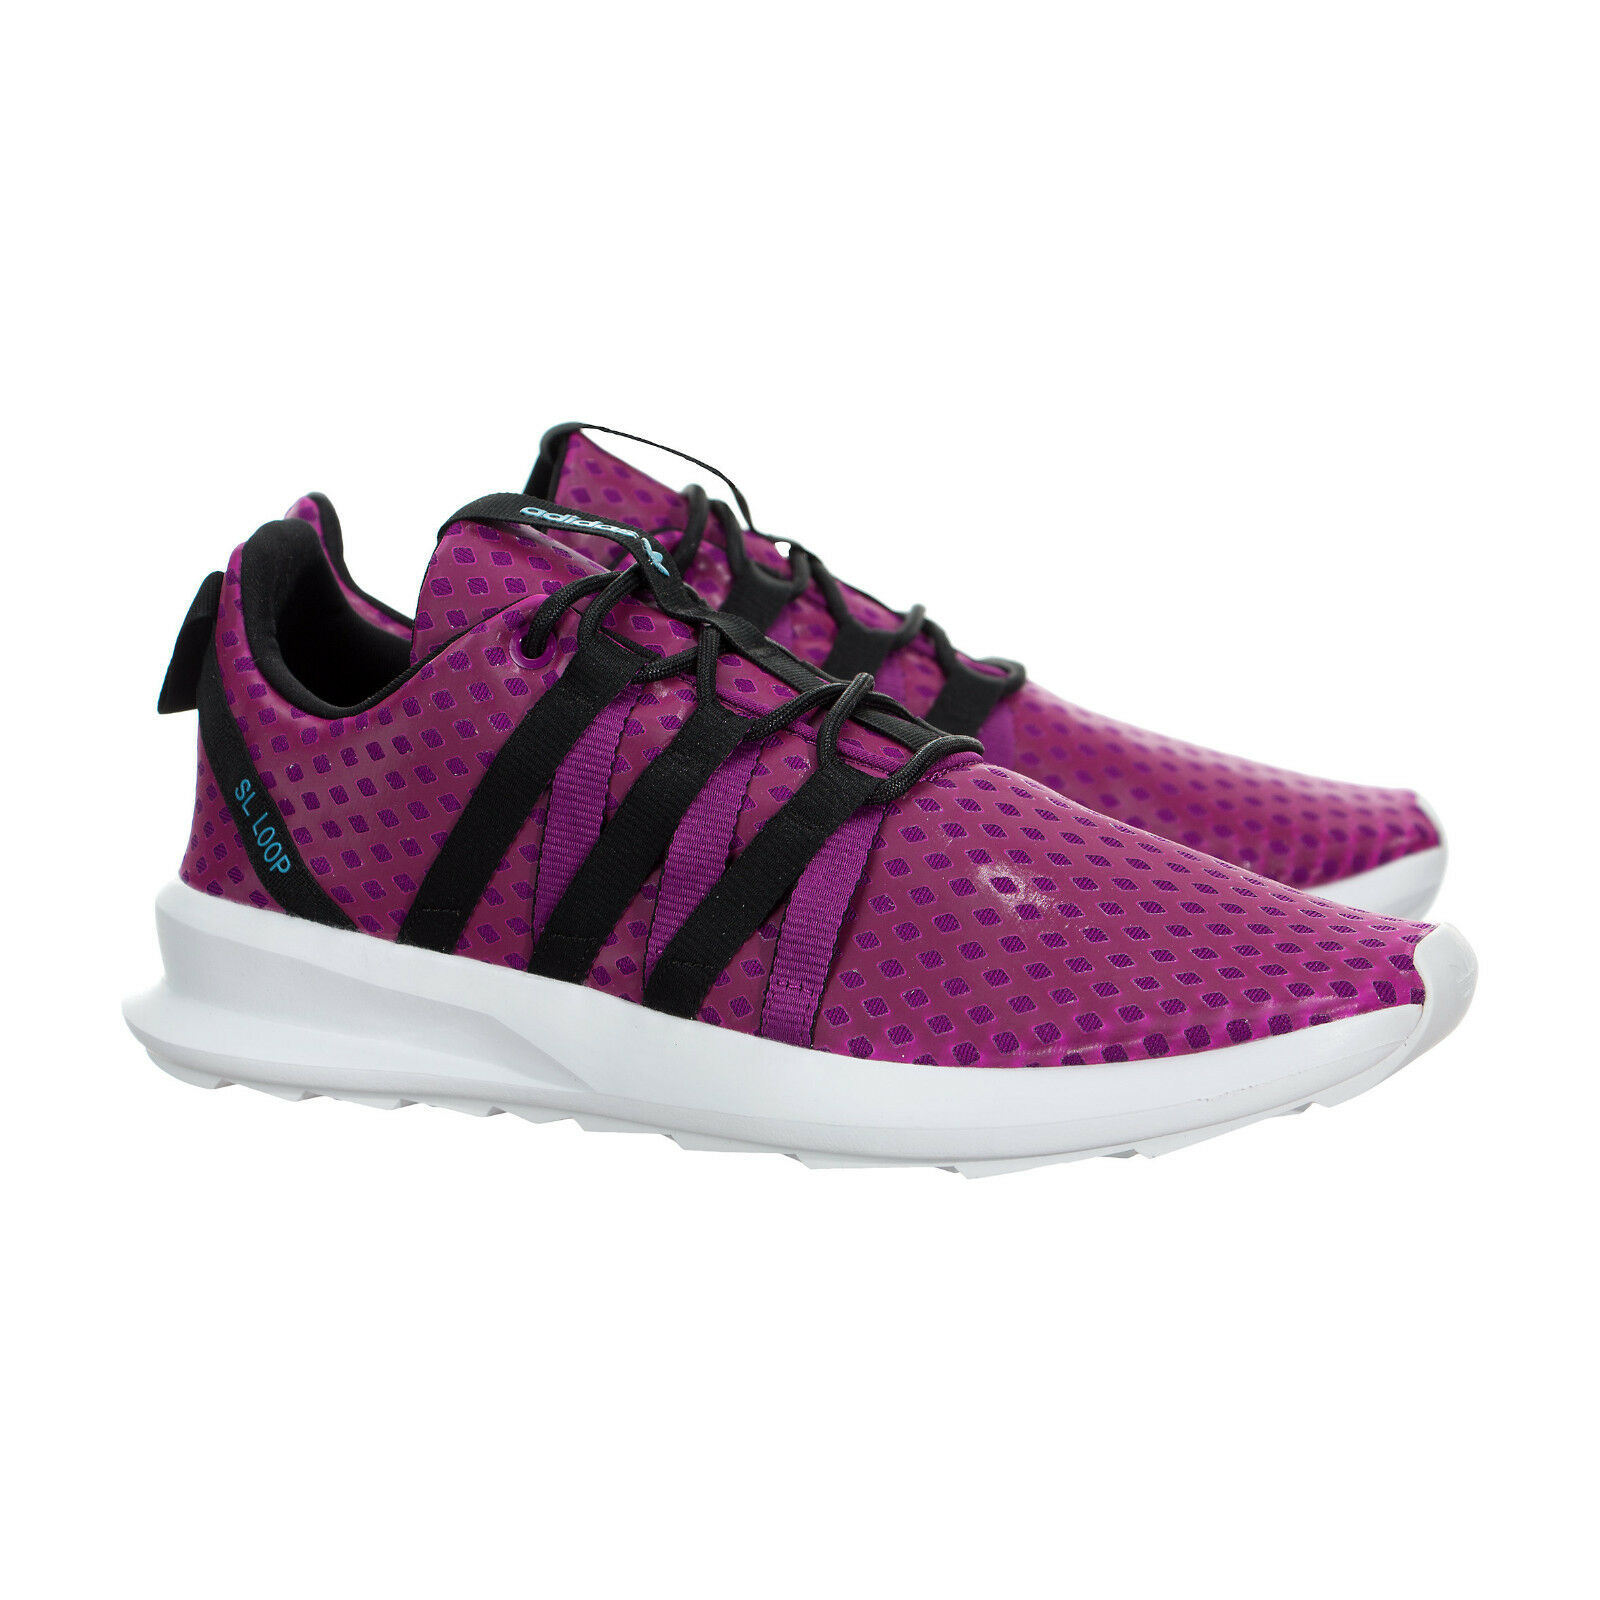 ADIDAS SL LOOP CT BERRY BLACK WHITE SIZE 10.5 RUNNING TRAINING SHOES S61125.25 Cheap women's shoes women's shoes